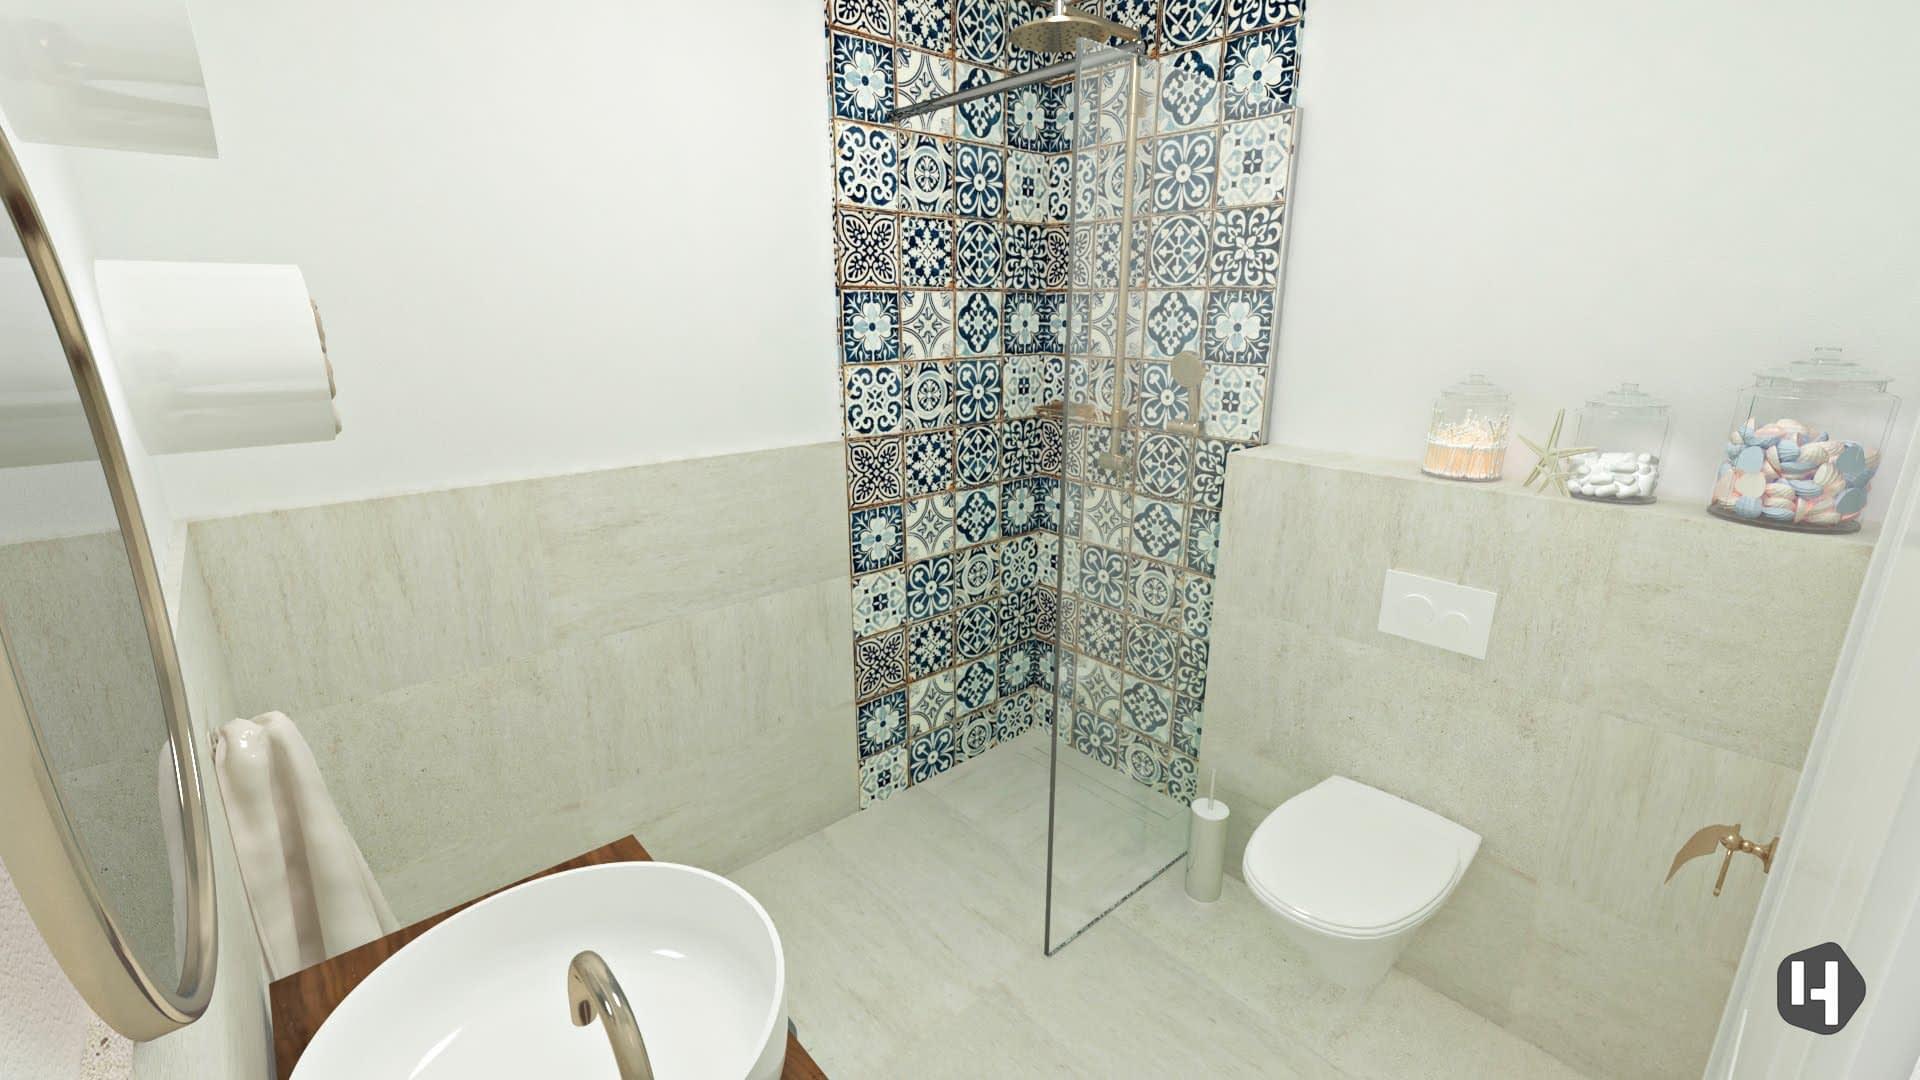 Morrocan Bathroom design